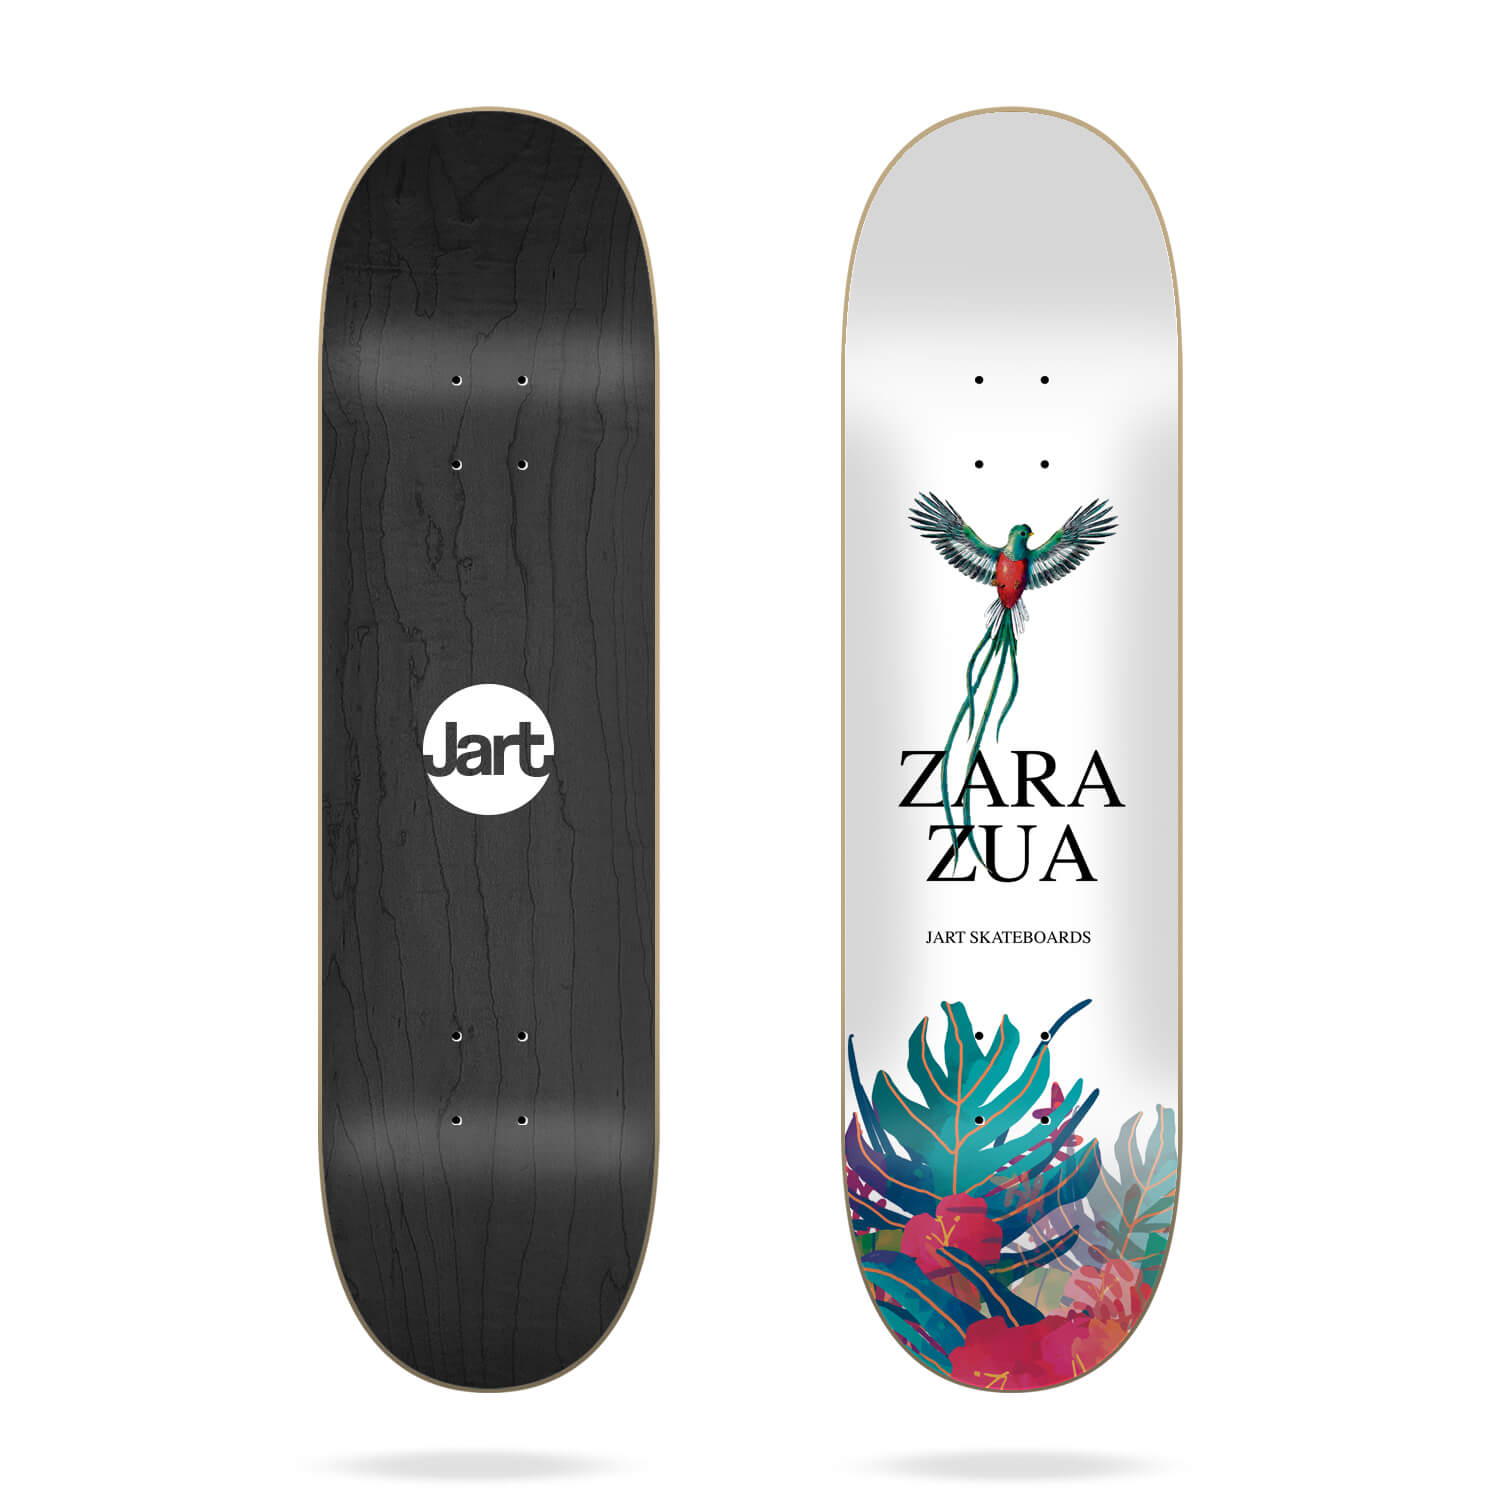 "Jart Cut Off 7.75"" Carlos Zarazua skateboard deck"